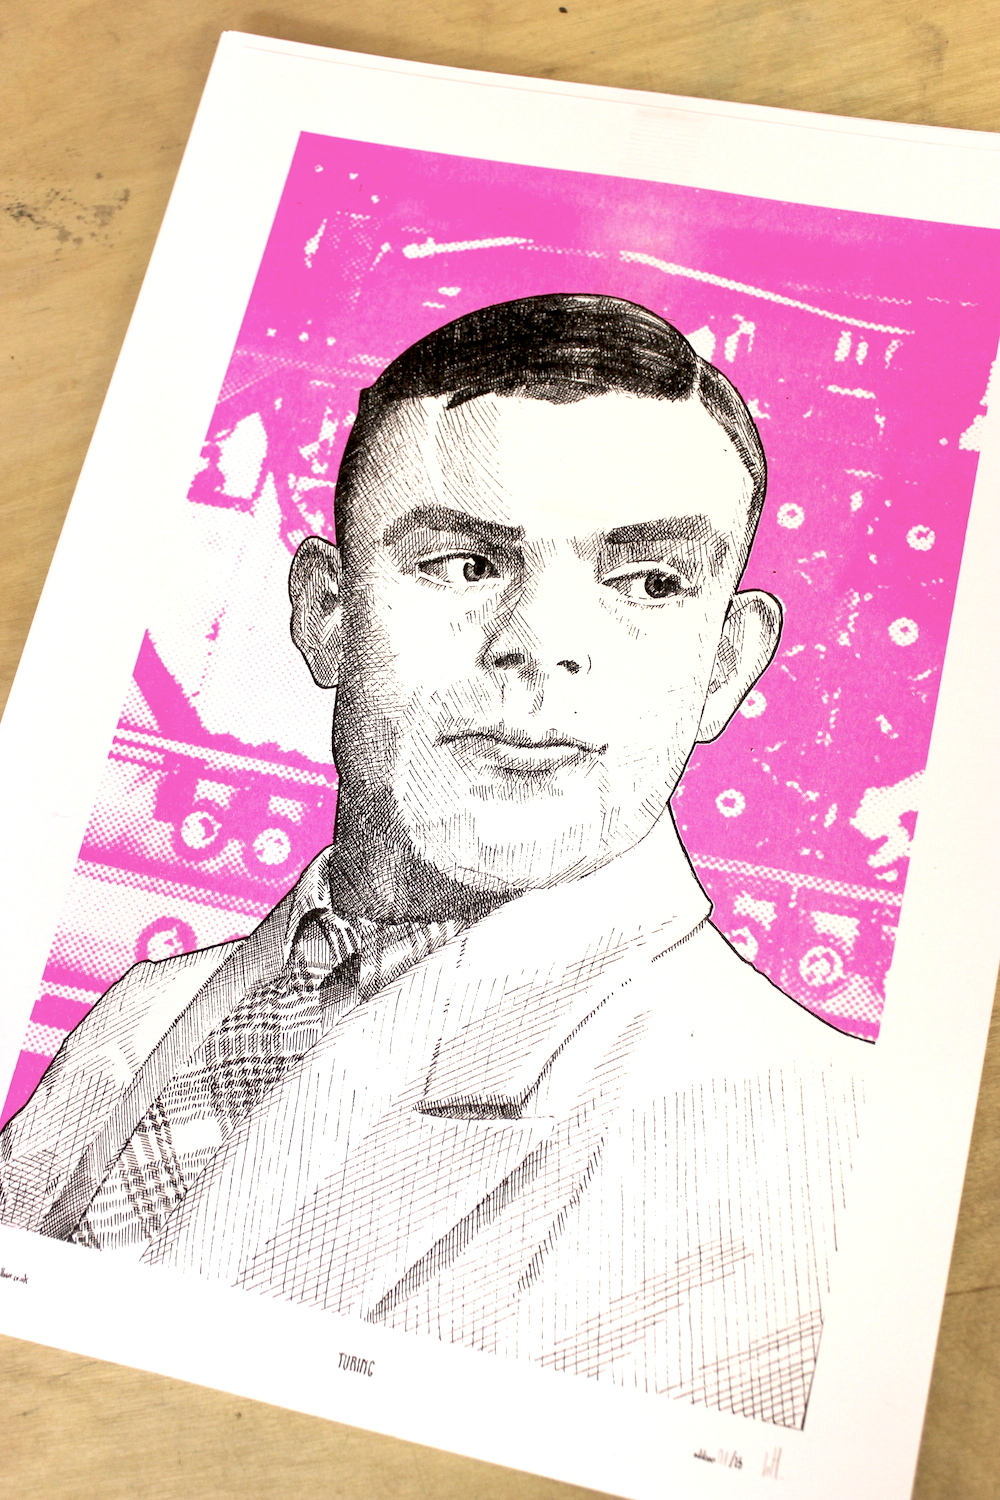 Alan Turing for Manchester University